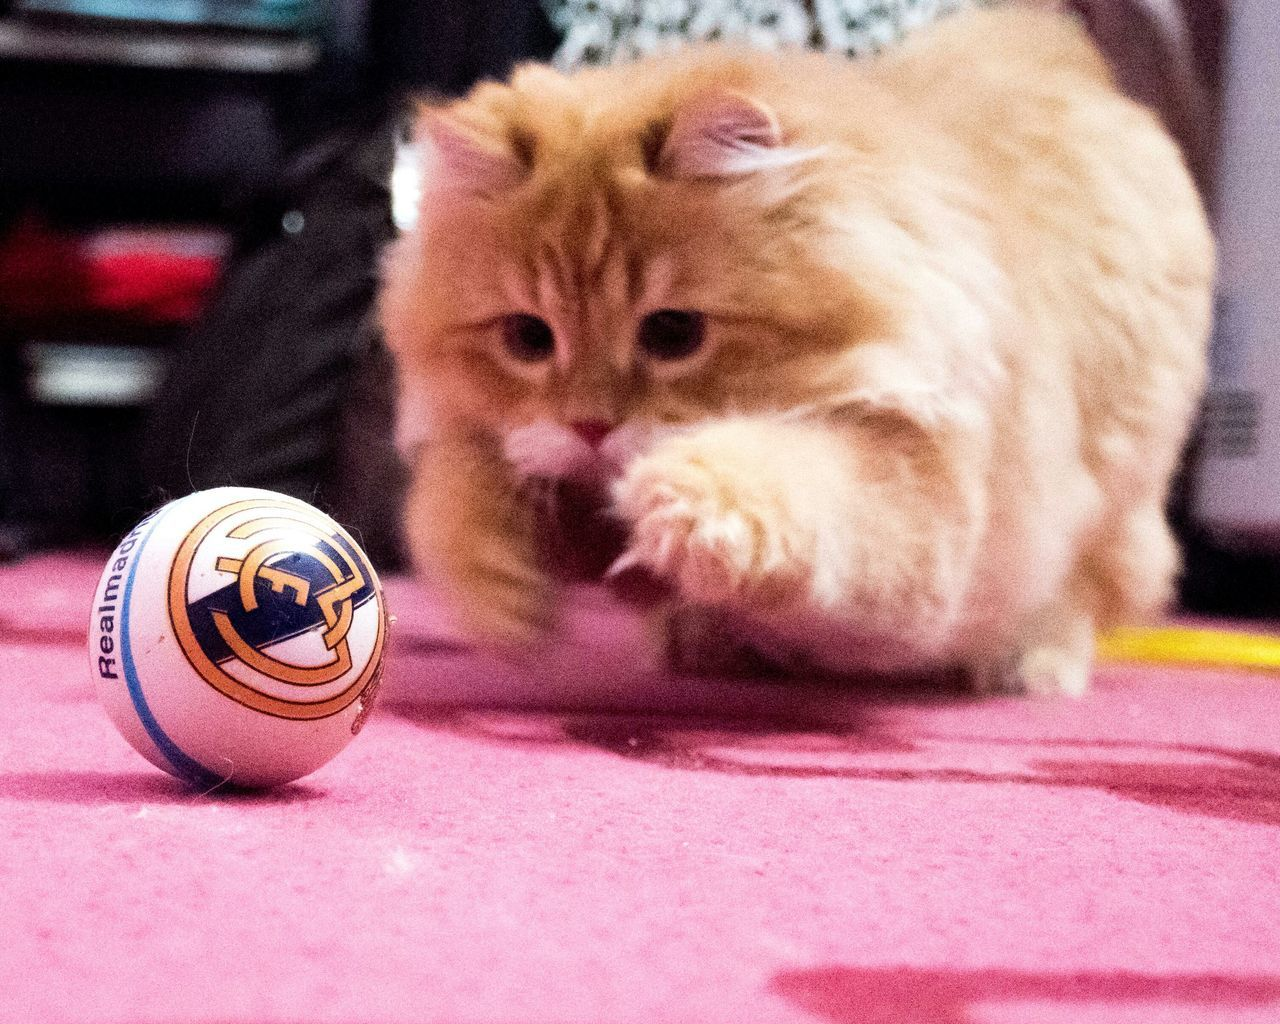 A true Madridista ! Iran Ahvaz Persiancat Cat EyeEmNewHere Garfield Realmadrid Realfan Pet Animal Animallovers Chek This Out  Pet Photography  Pets Fluffy Cat EyeEmNewHere Halamadrid First Eyeem Photo Soccer Football Realmadridcf RealMadridfan